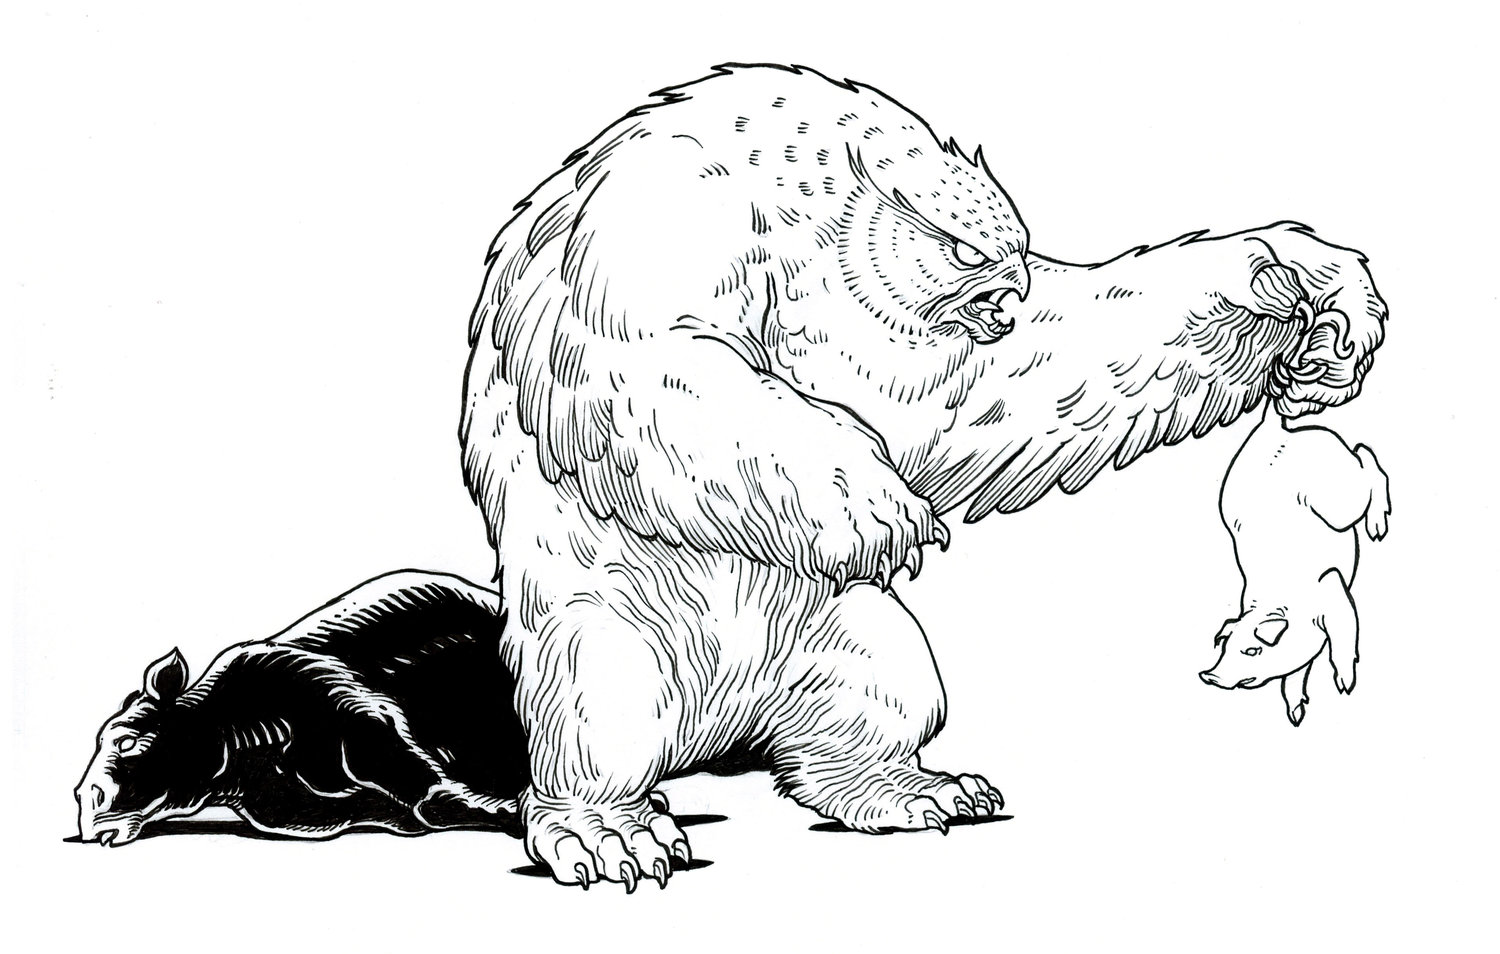 Owlbear Barbecue